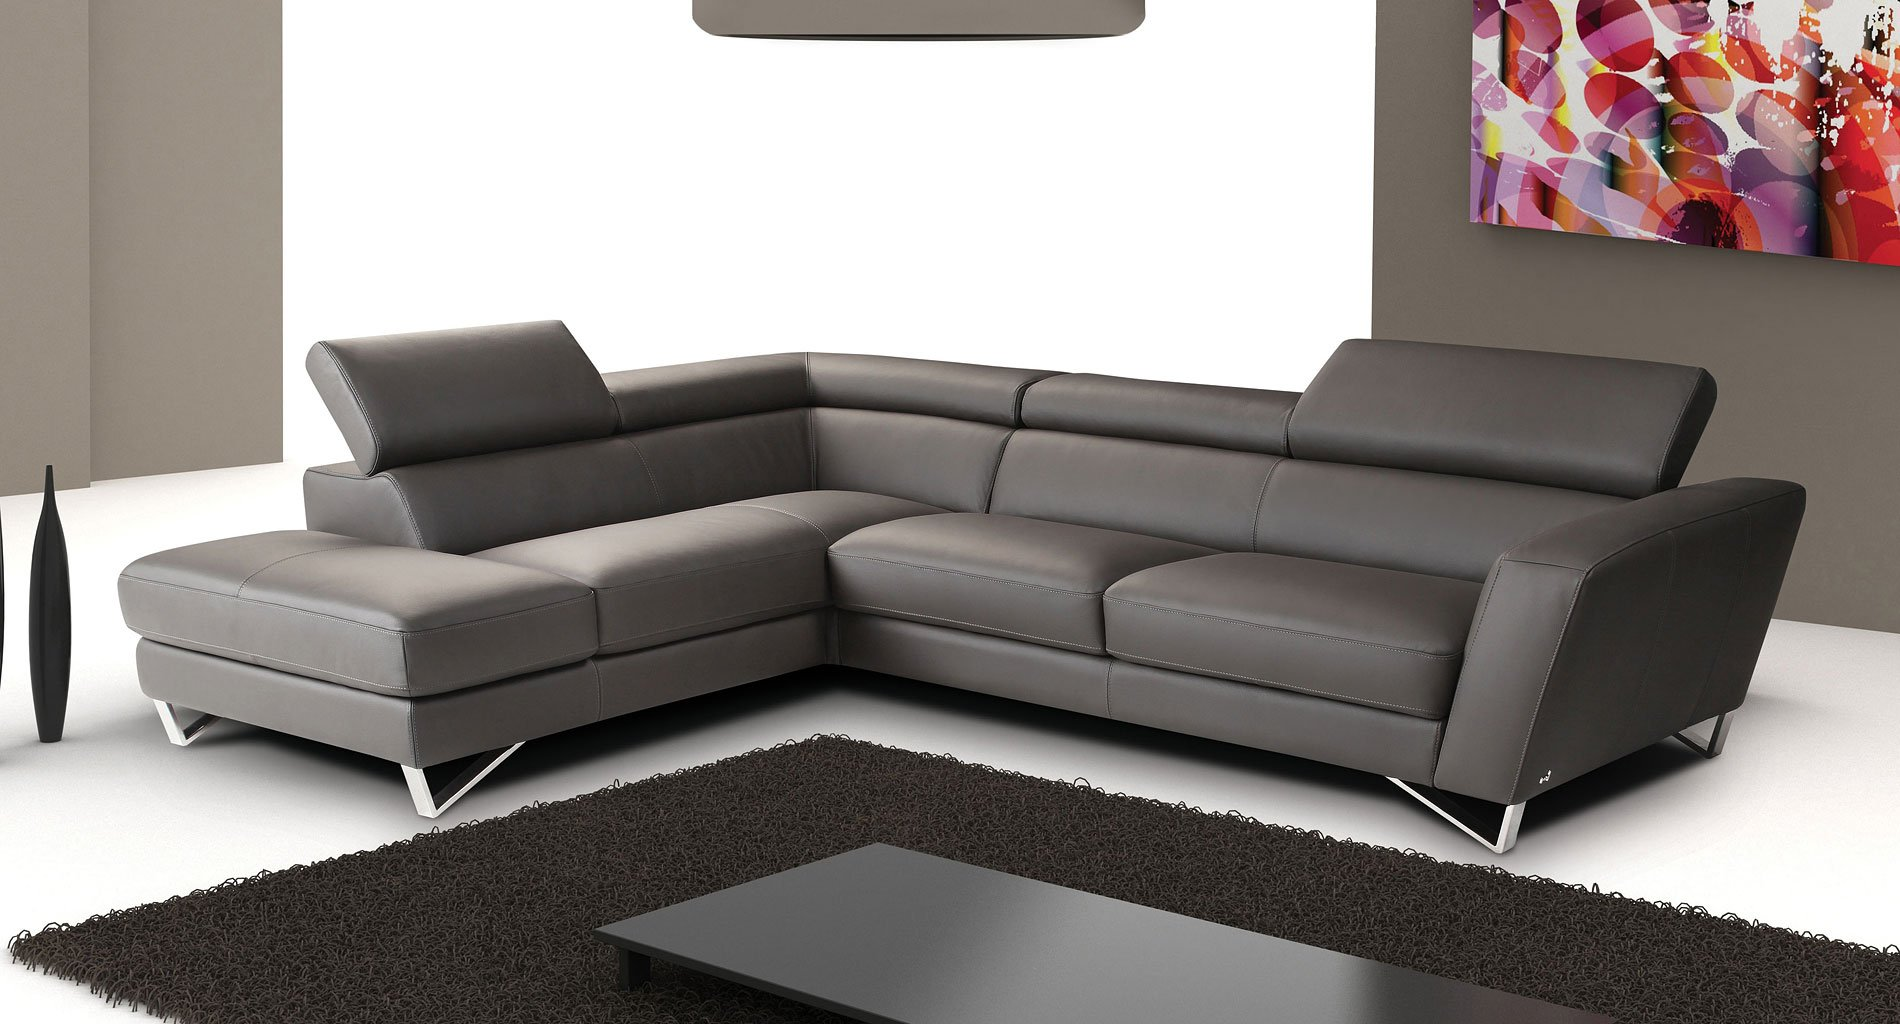 Sparta Leather Left Chaise Sectional (Gray) by JM ... on Sparta Outdoor Living id=56131